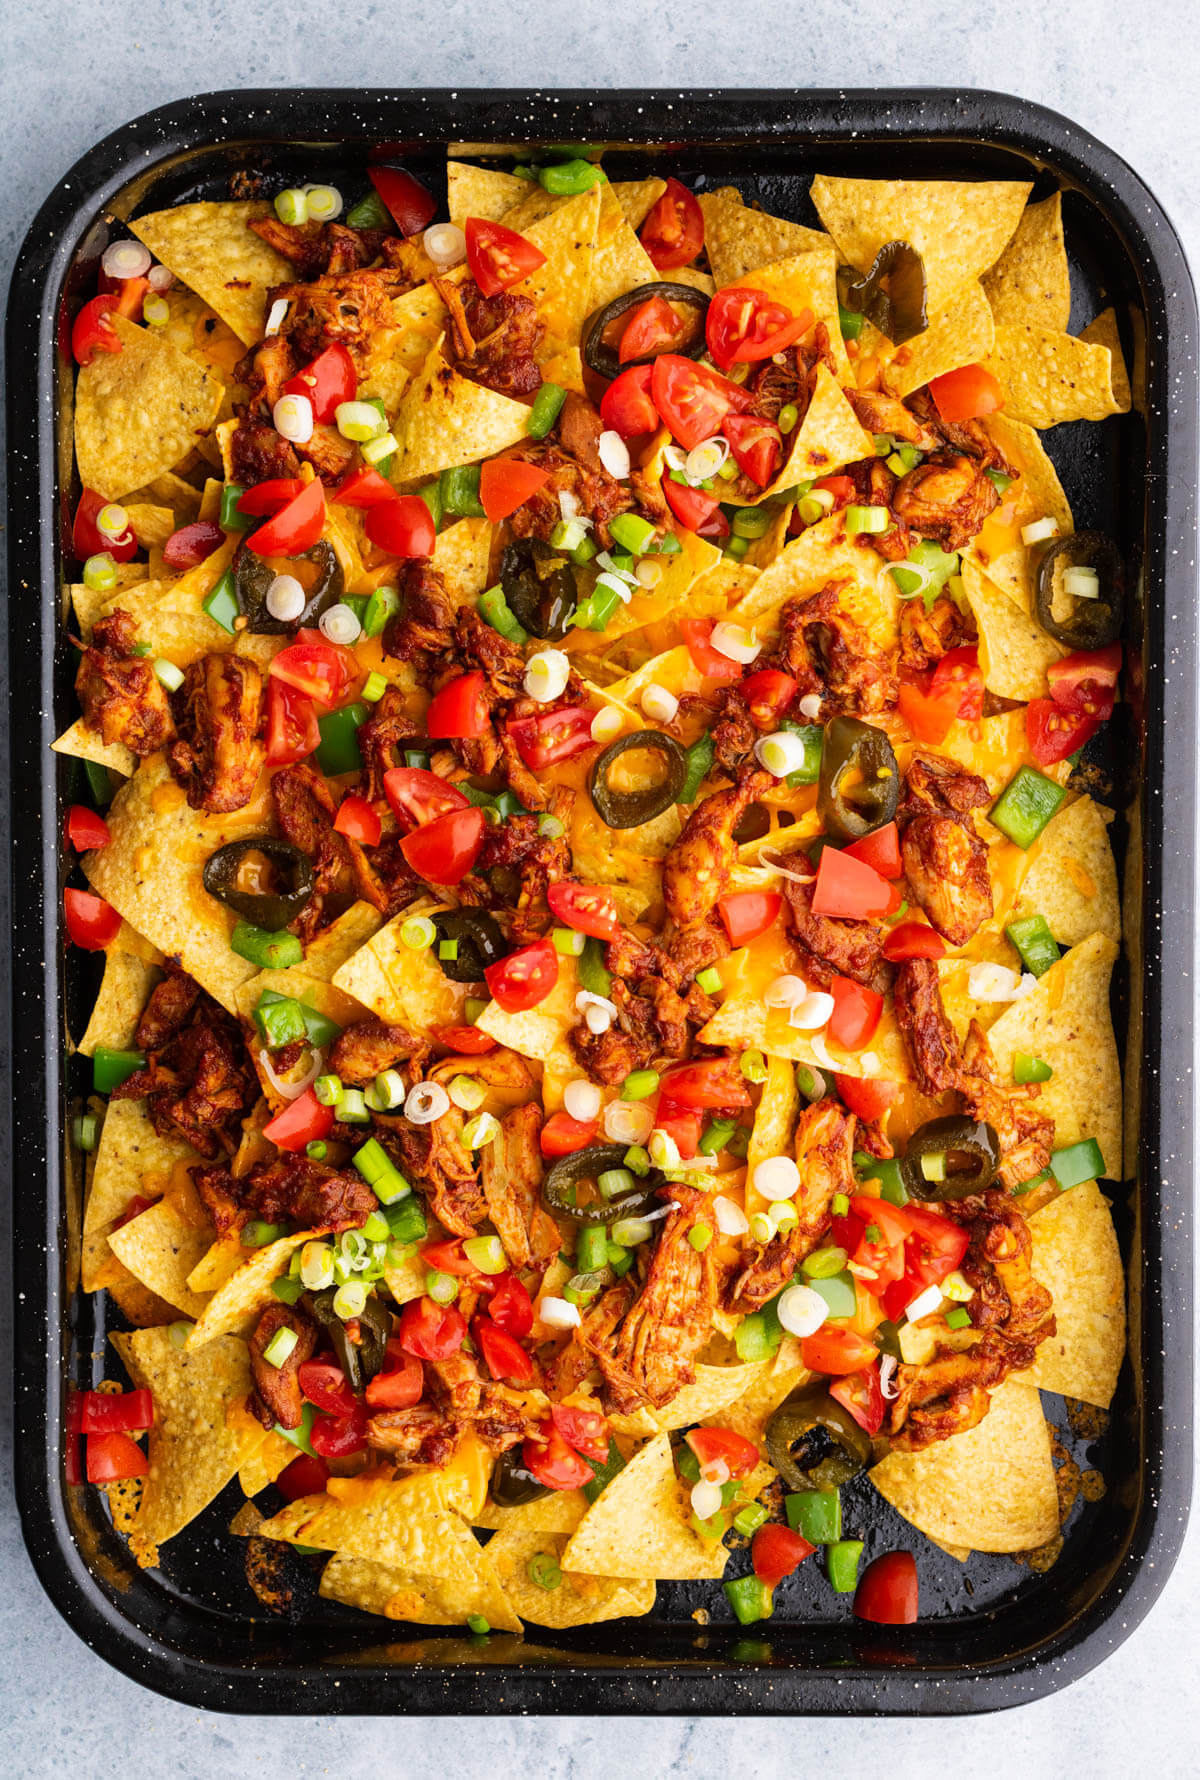 A tray of BBQ Chicken nachos with bright red tomatoes, green onions, and candied jalapenos.